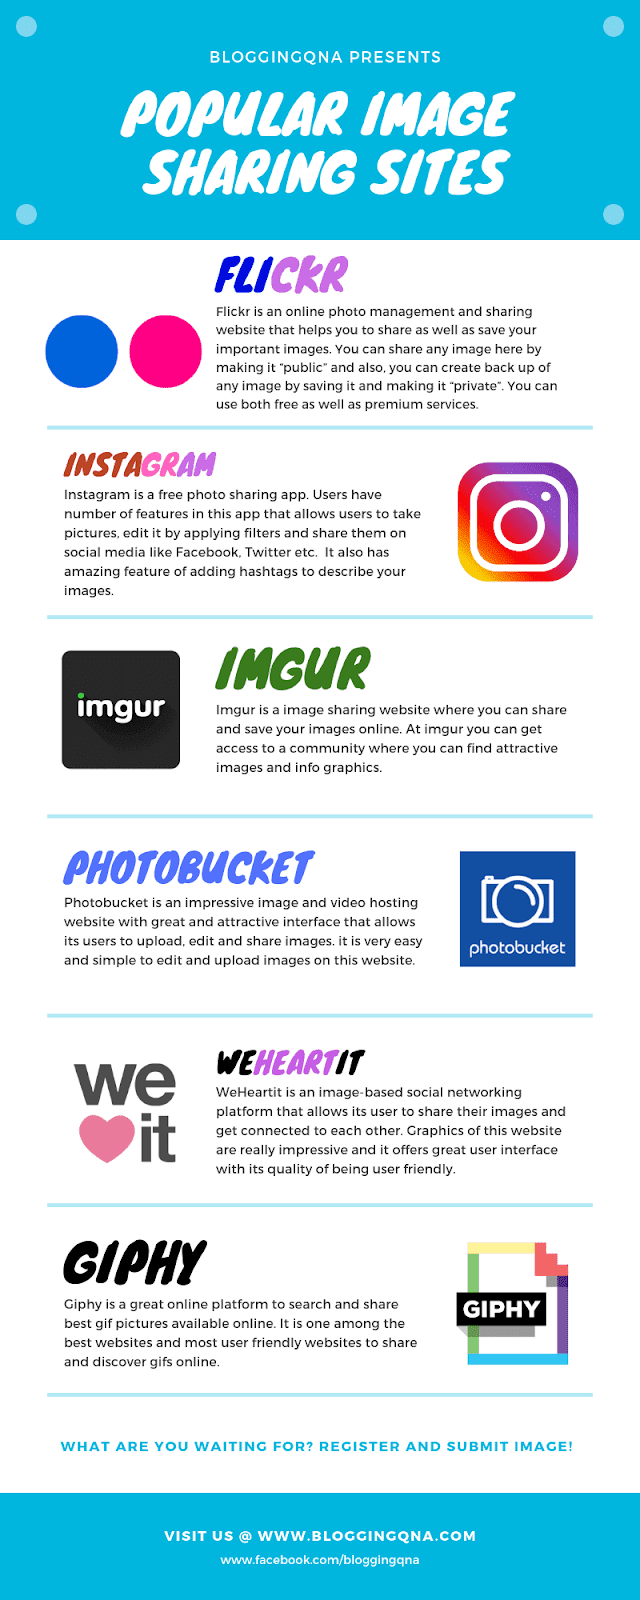 Most Popular Image Sharing Sites